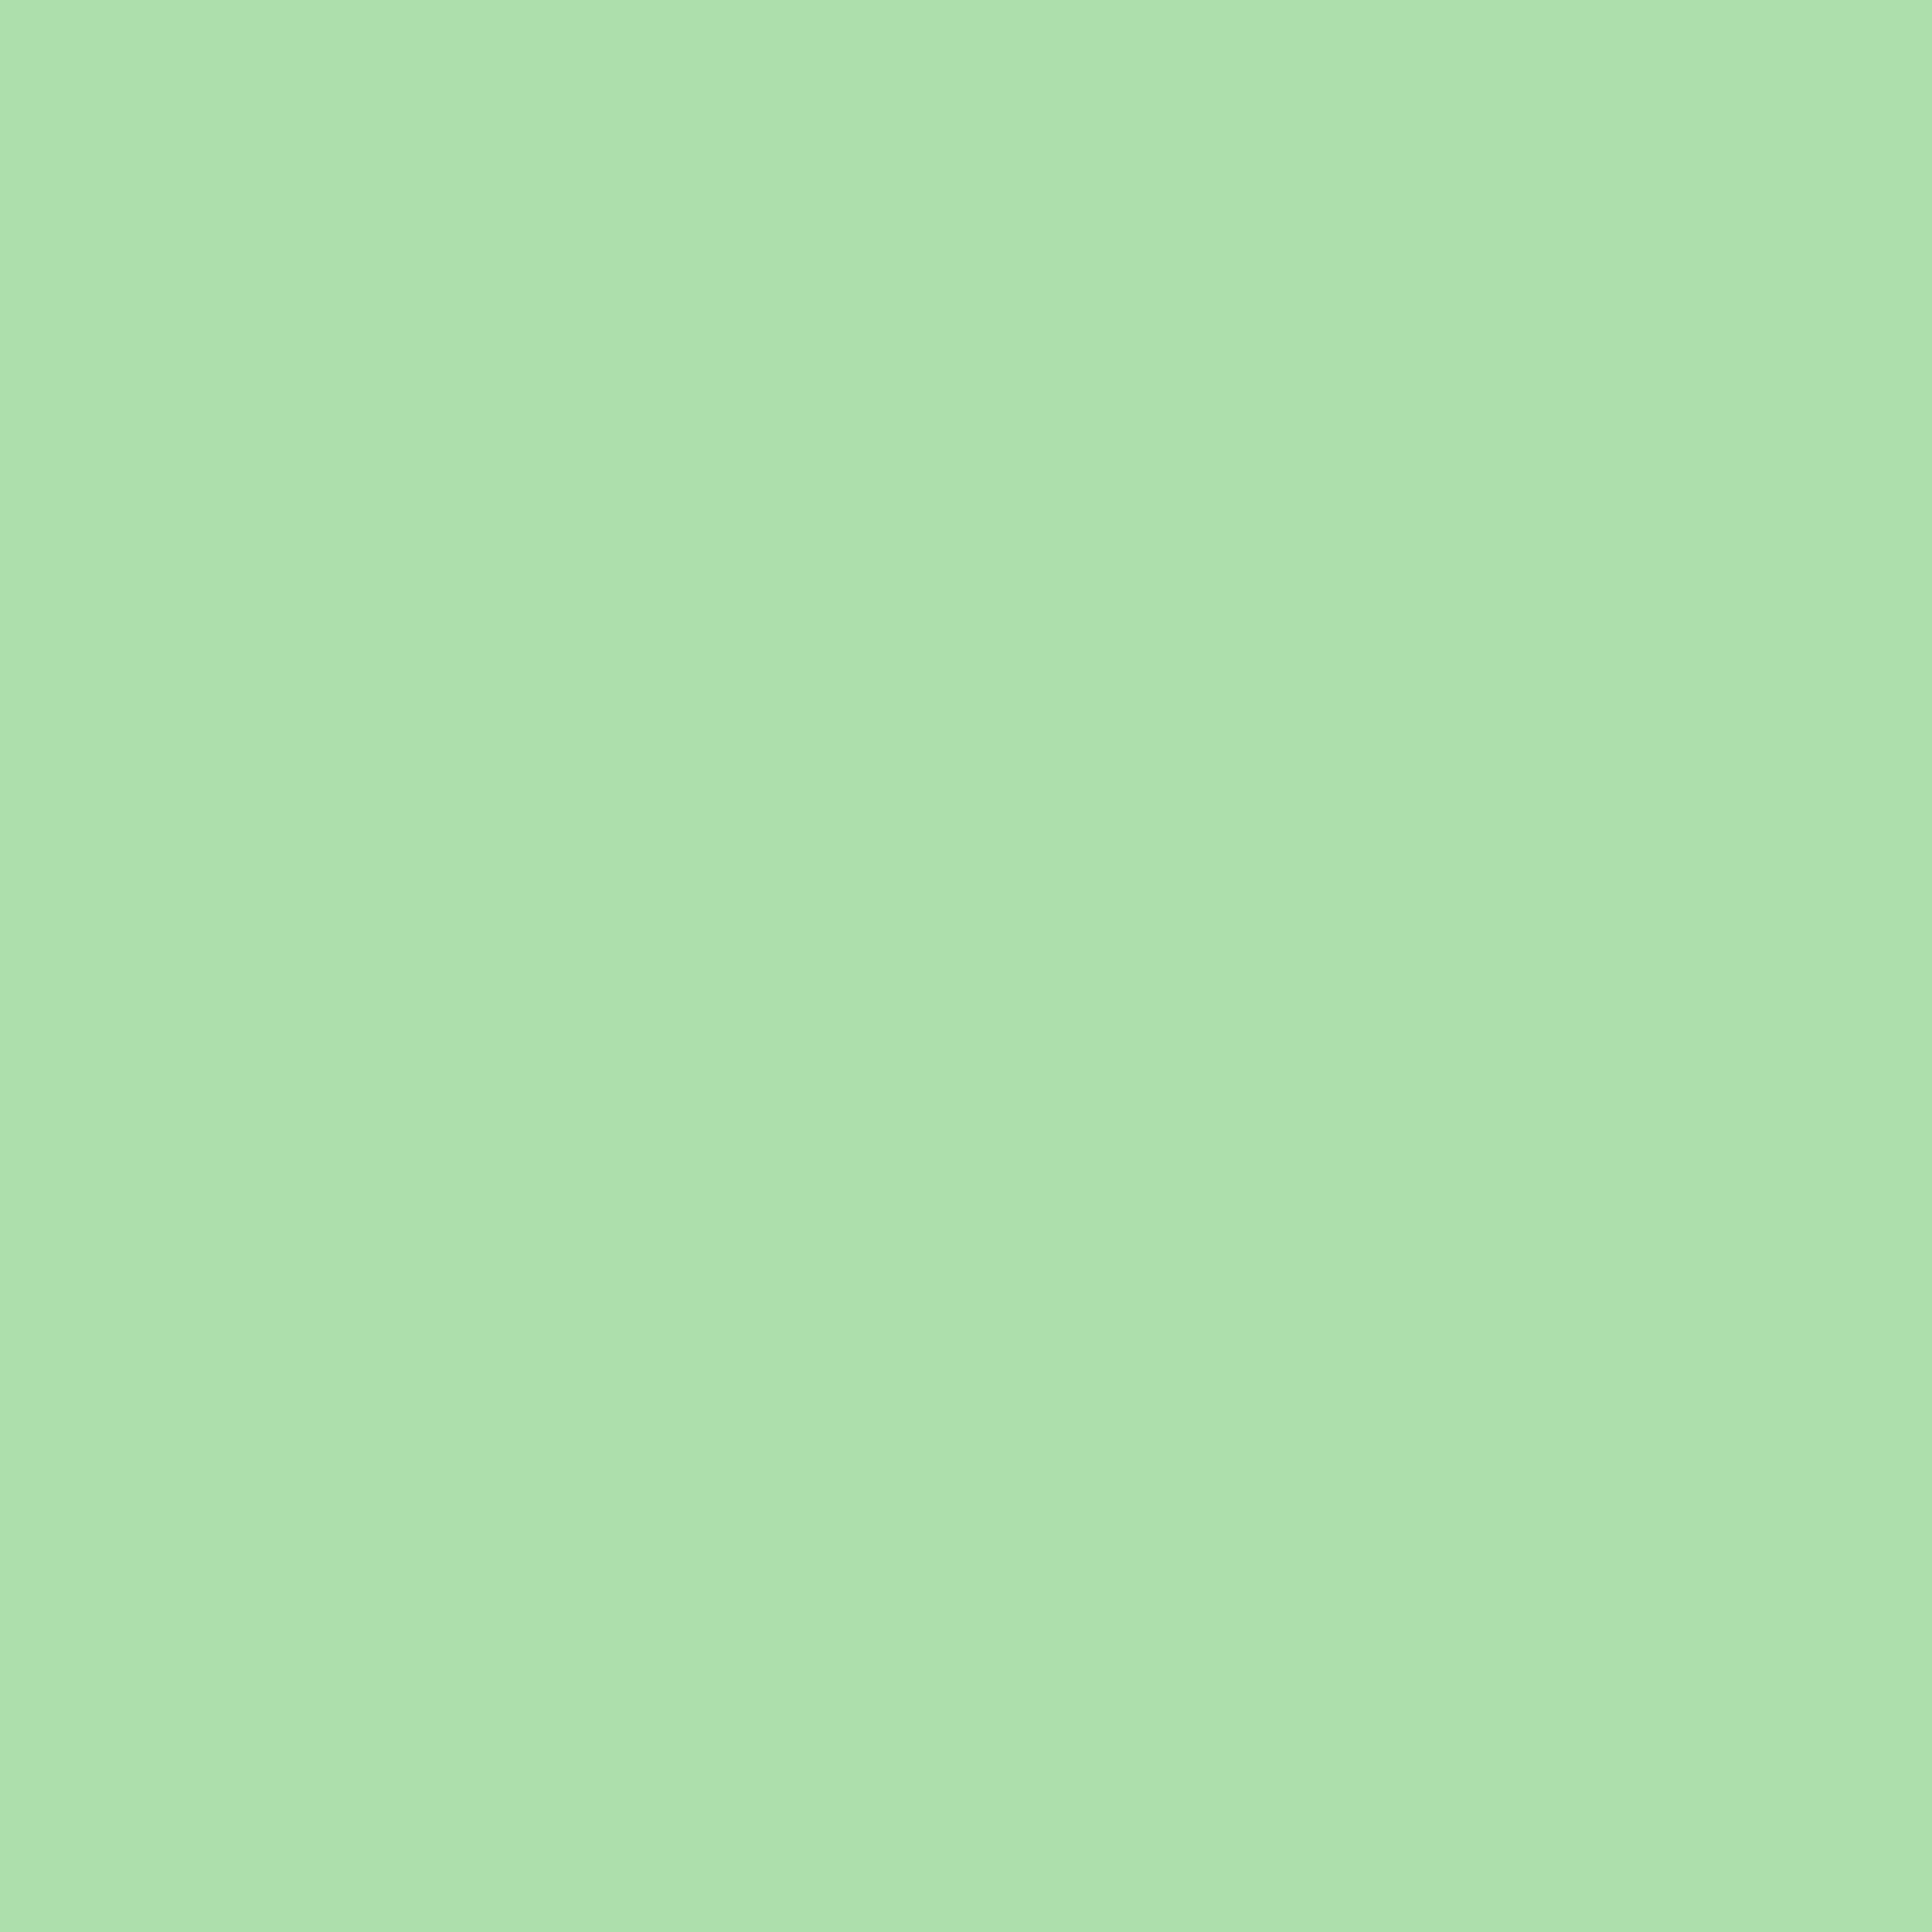 2048x2048 Light Moss Green Solid Color Background